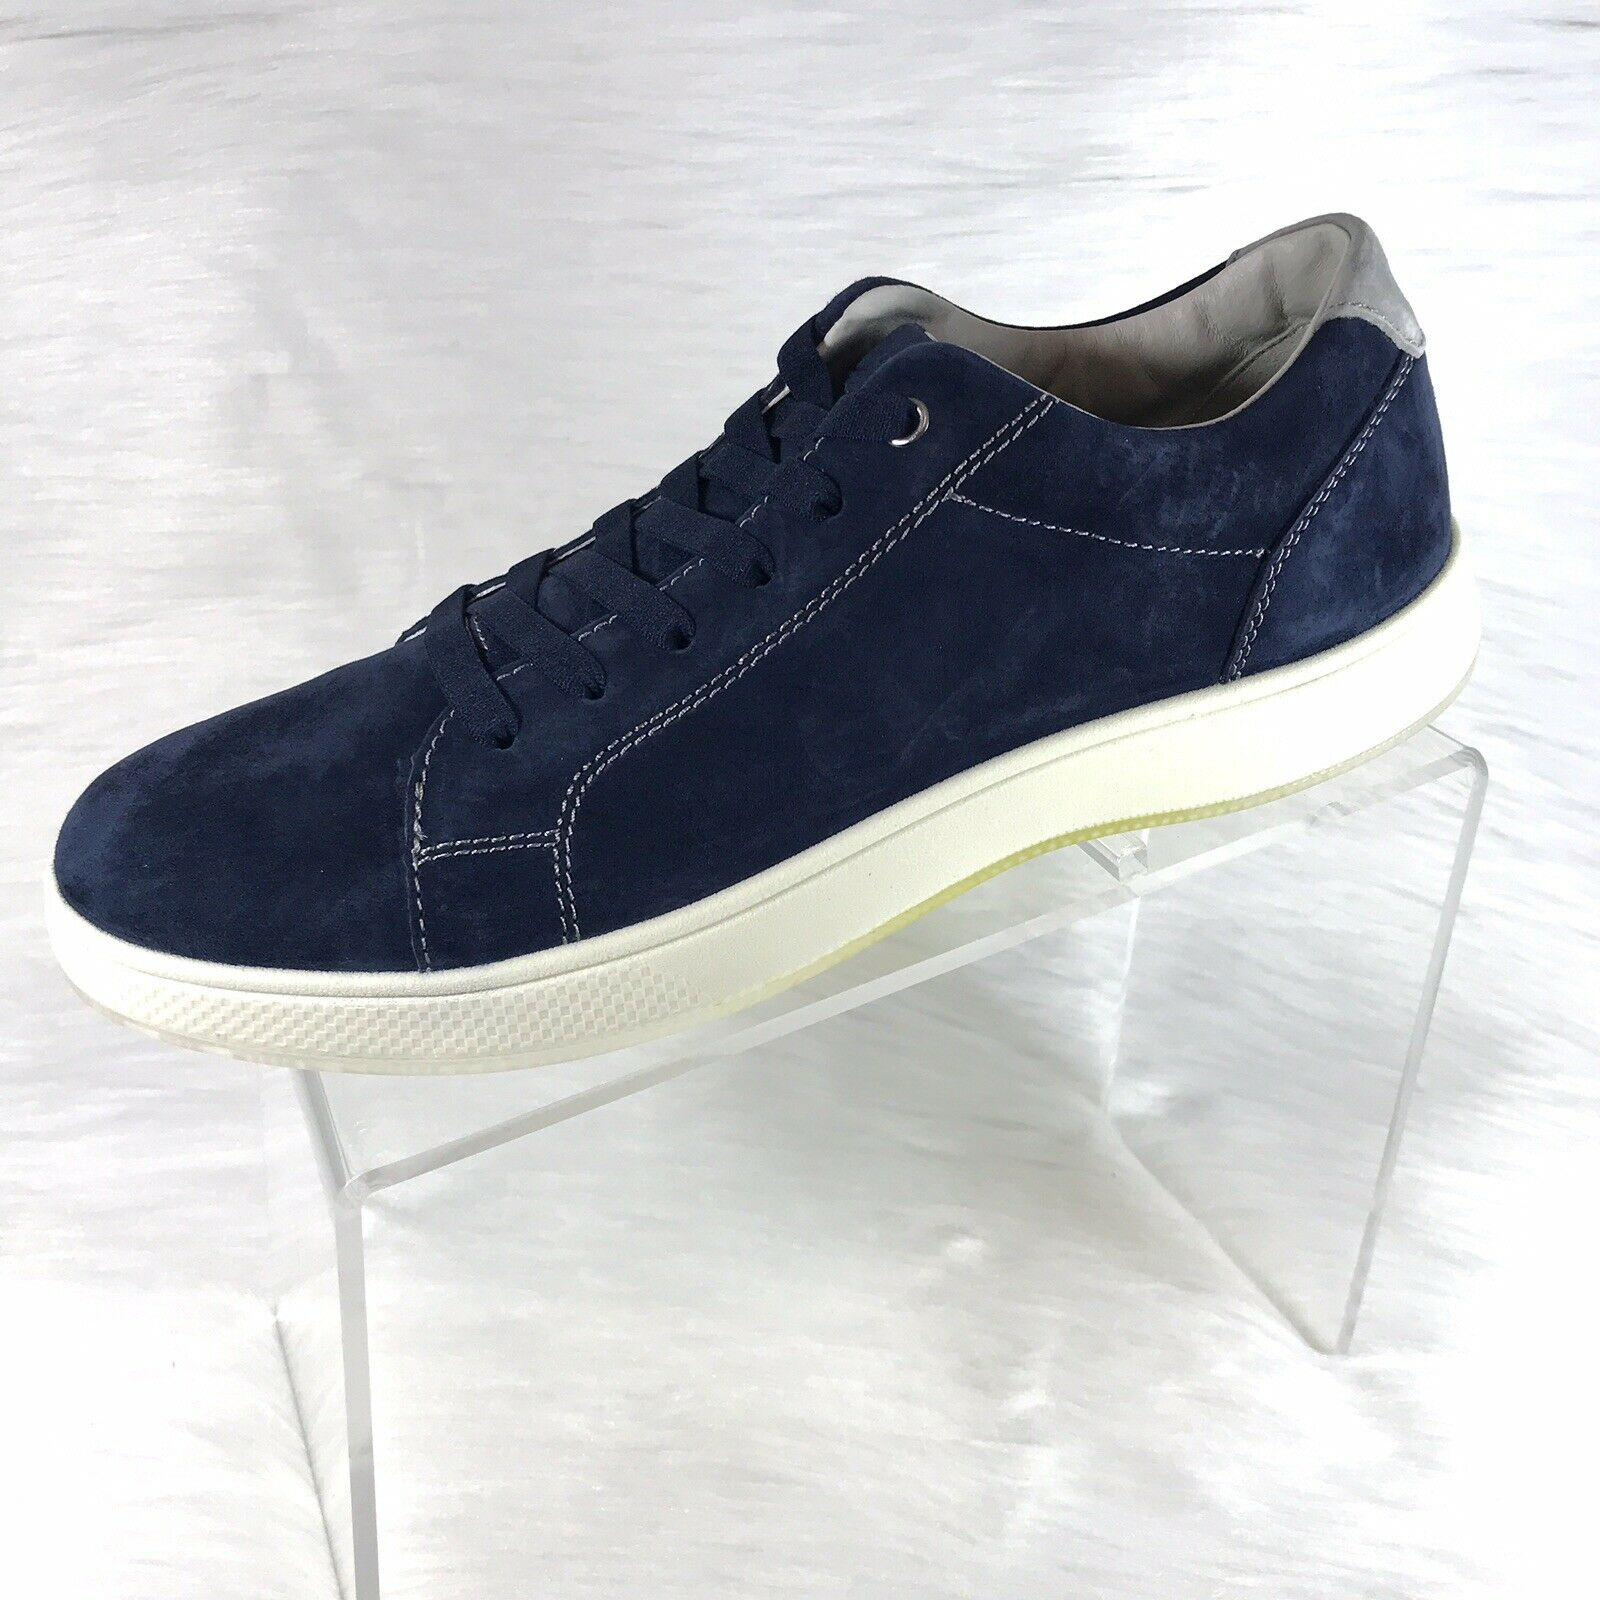 Florsheim Men's Edge Lit Sneakers Navy Lace Up Size 9 M New